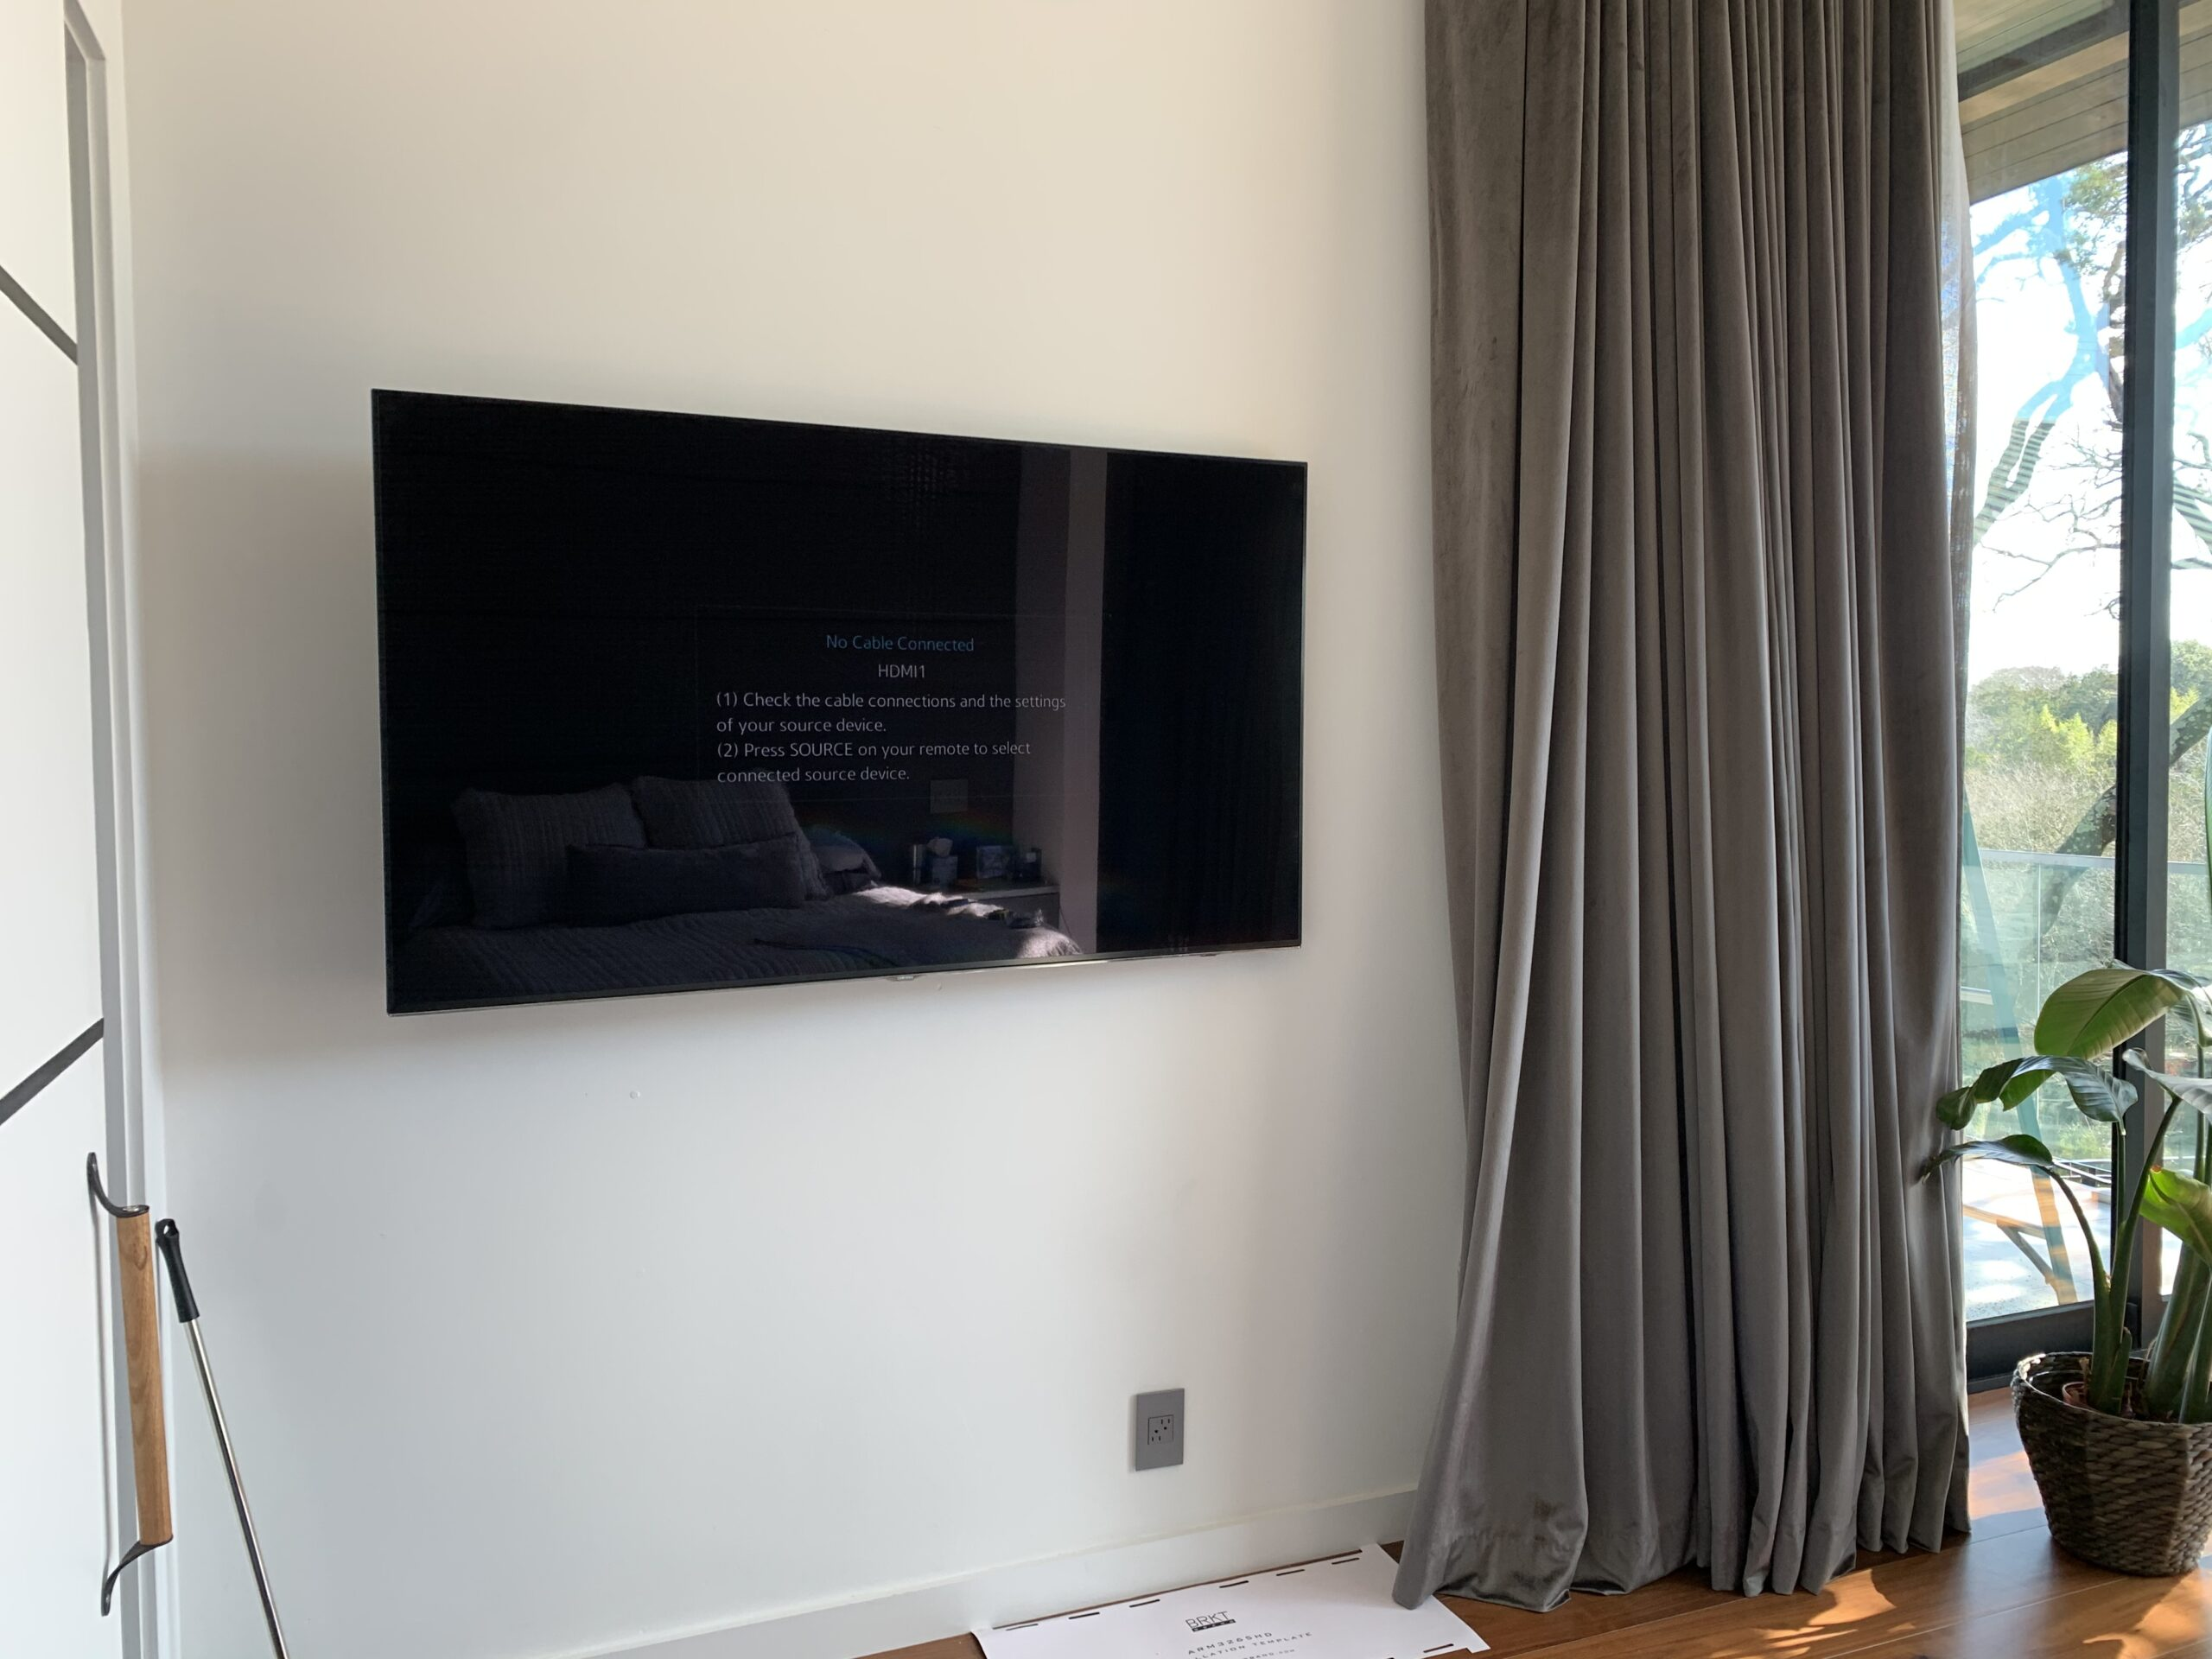 Luxury condo with flat screen mounted TV and home surround sound system